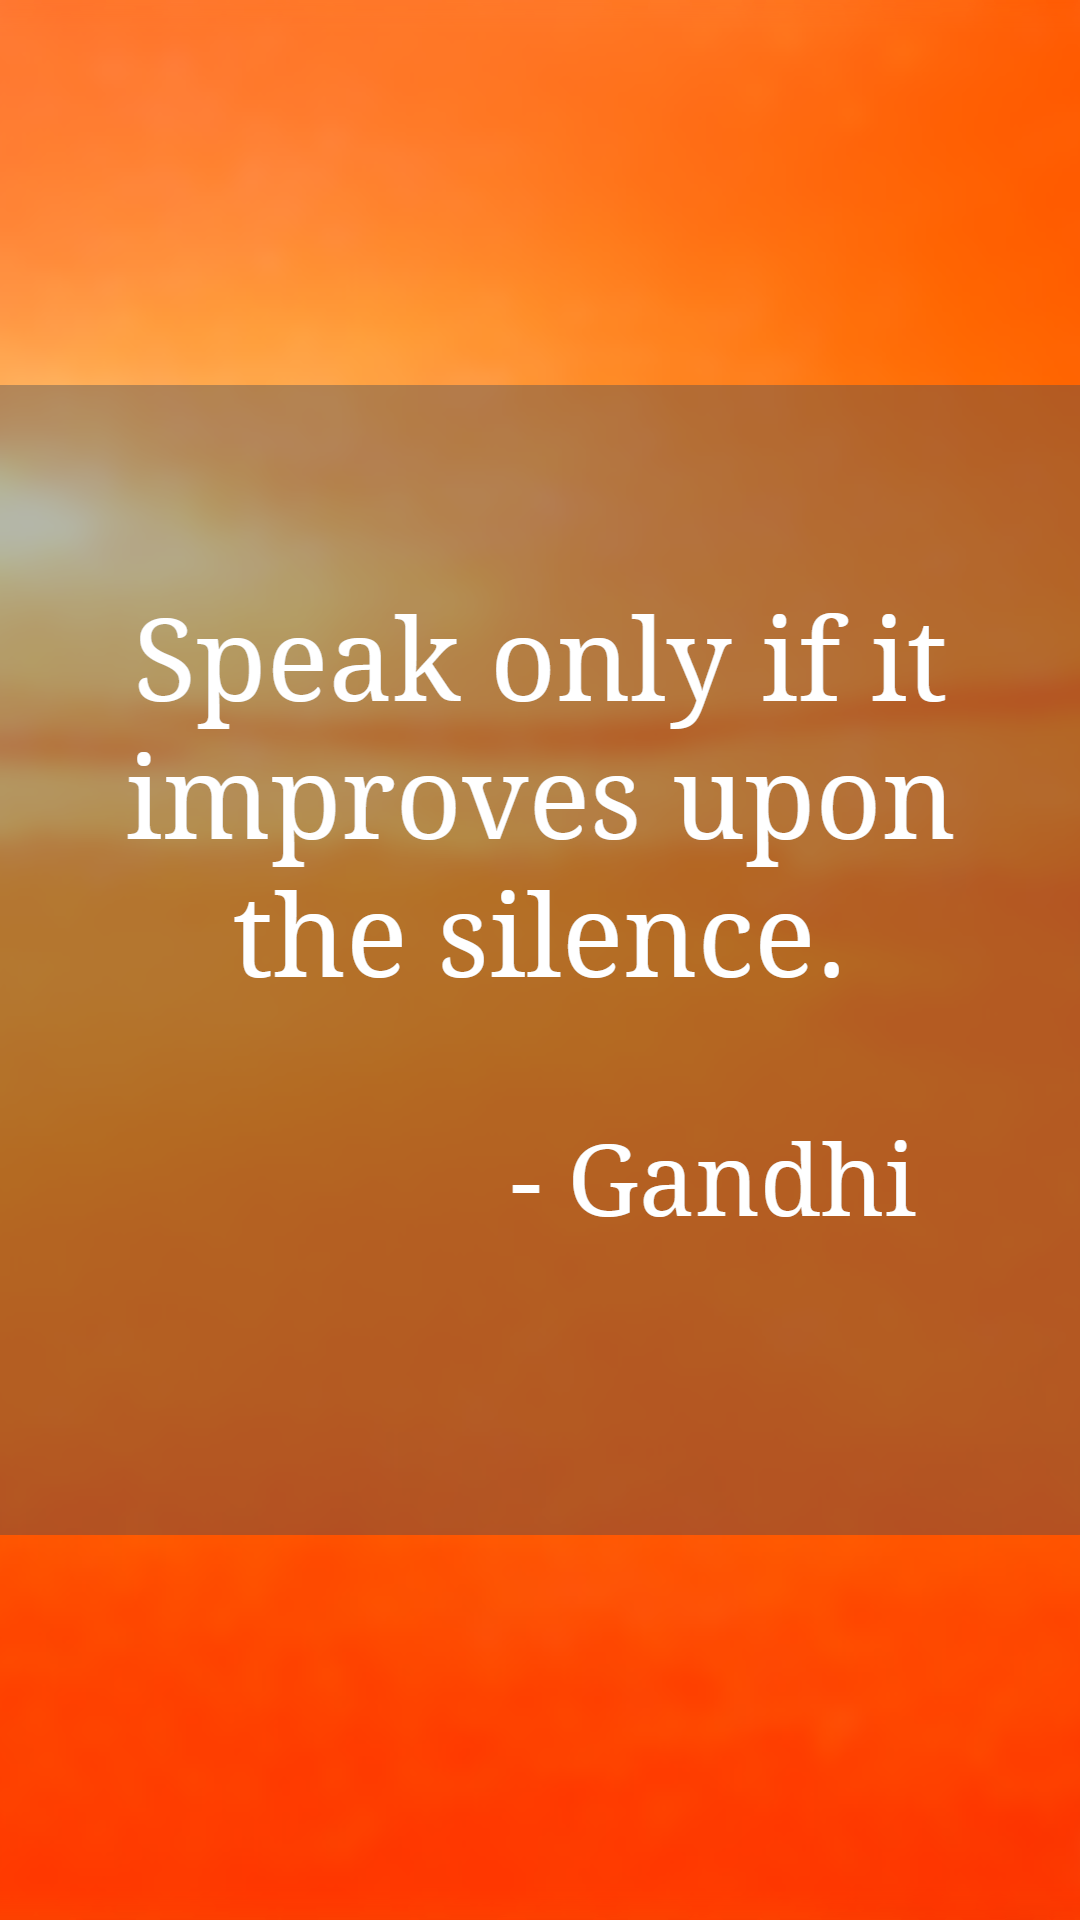 Speak Only If It Improves Upon The Silence Gandhi Quotes And